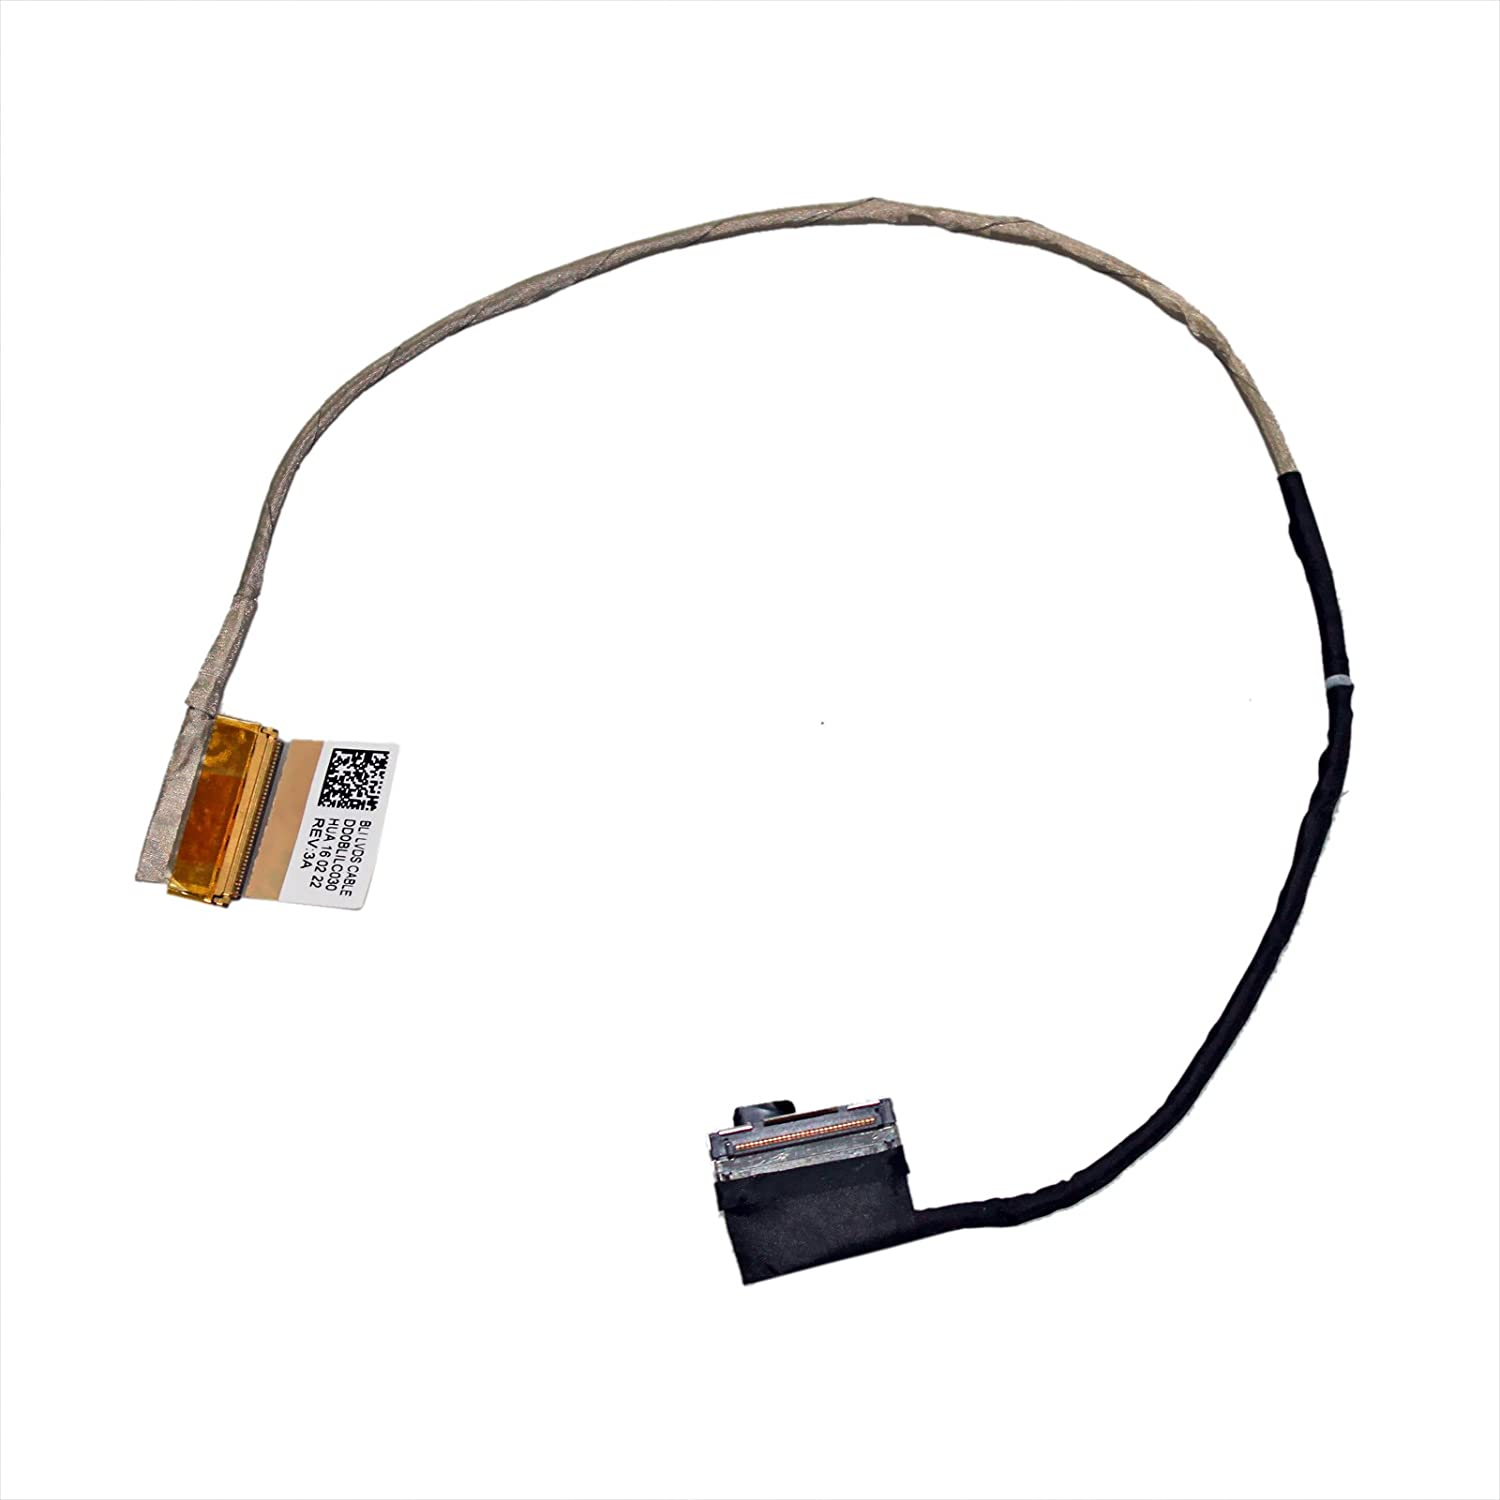 40 Pin GinTai LCD LED LVDS Video Screen Cable Replacement for Toshiba S55-B5203SL S55-B5258 S55-B5266 PSPQ6U